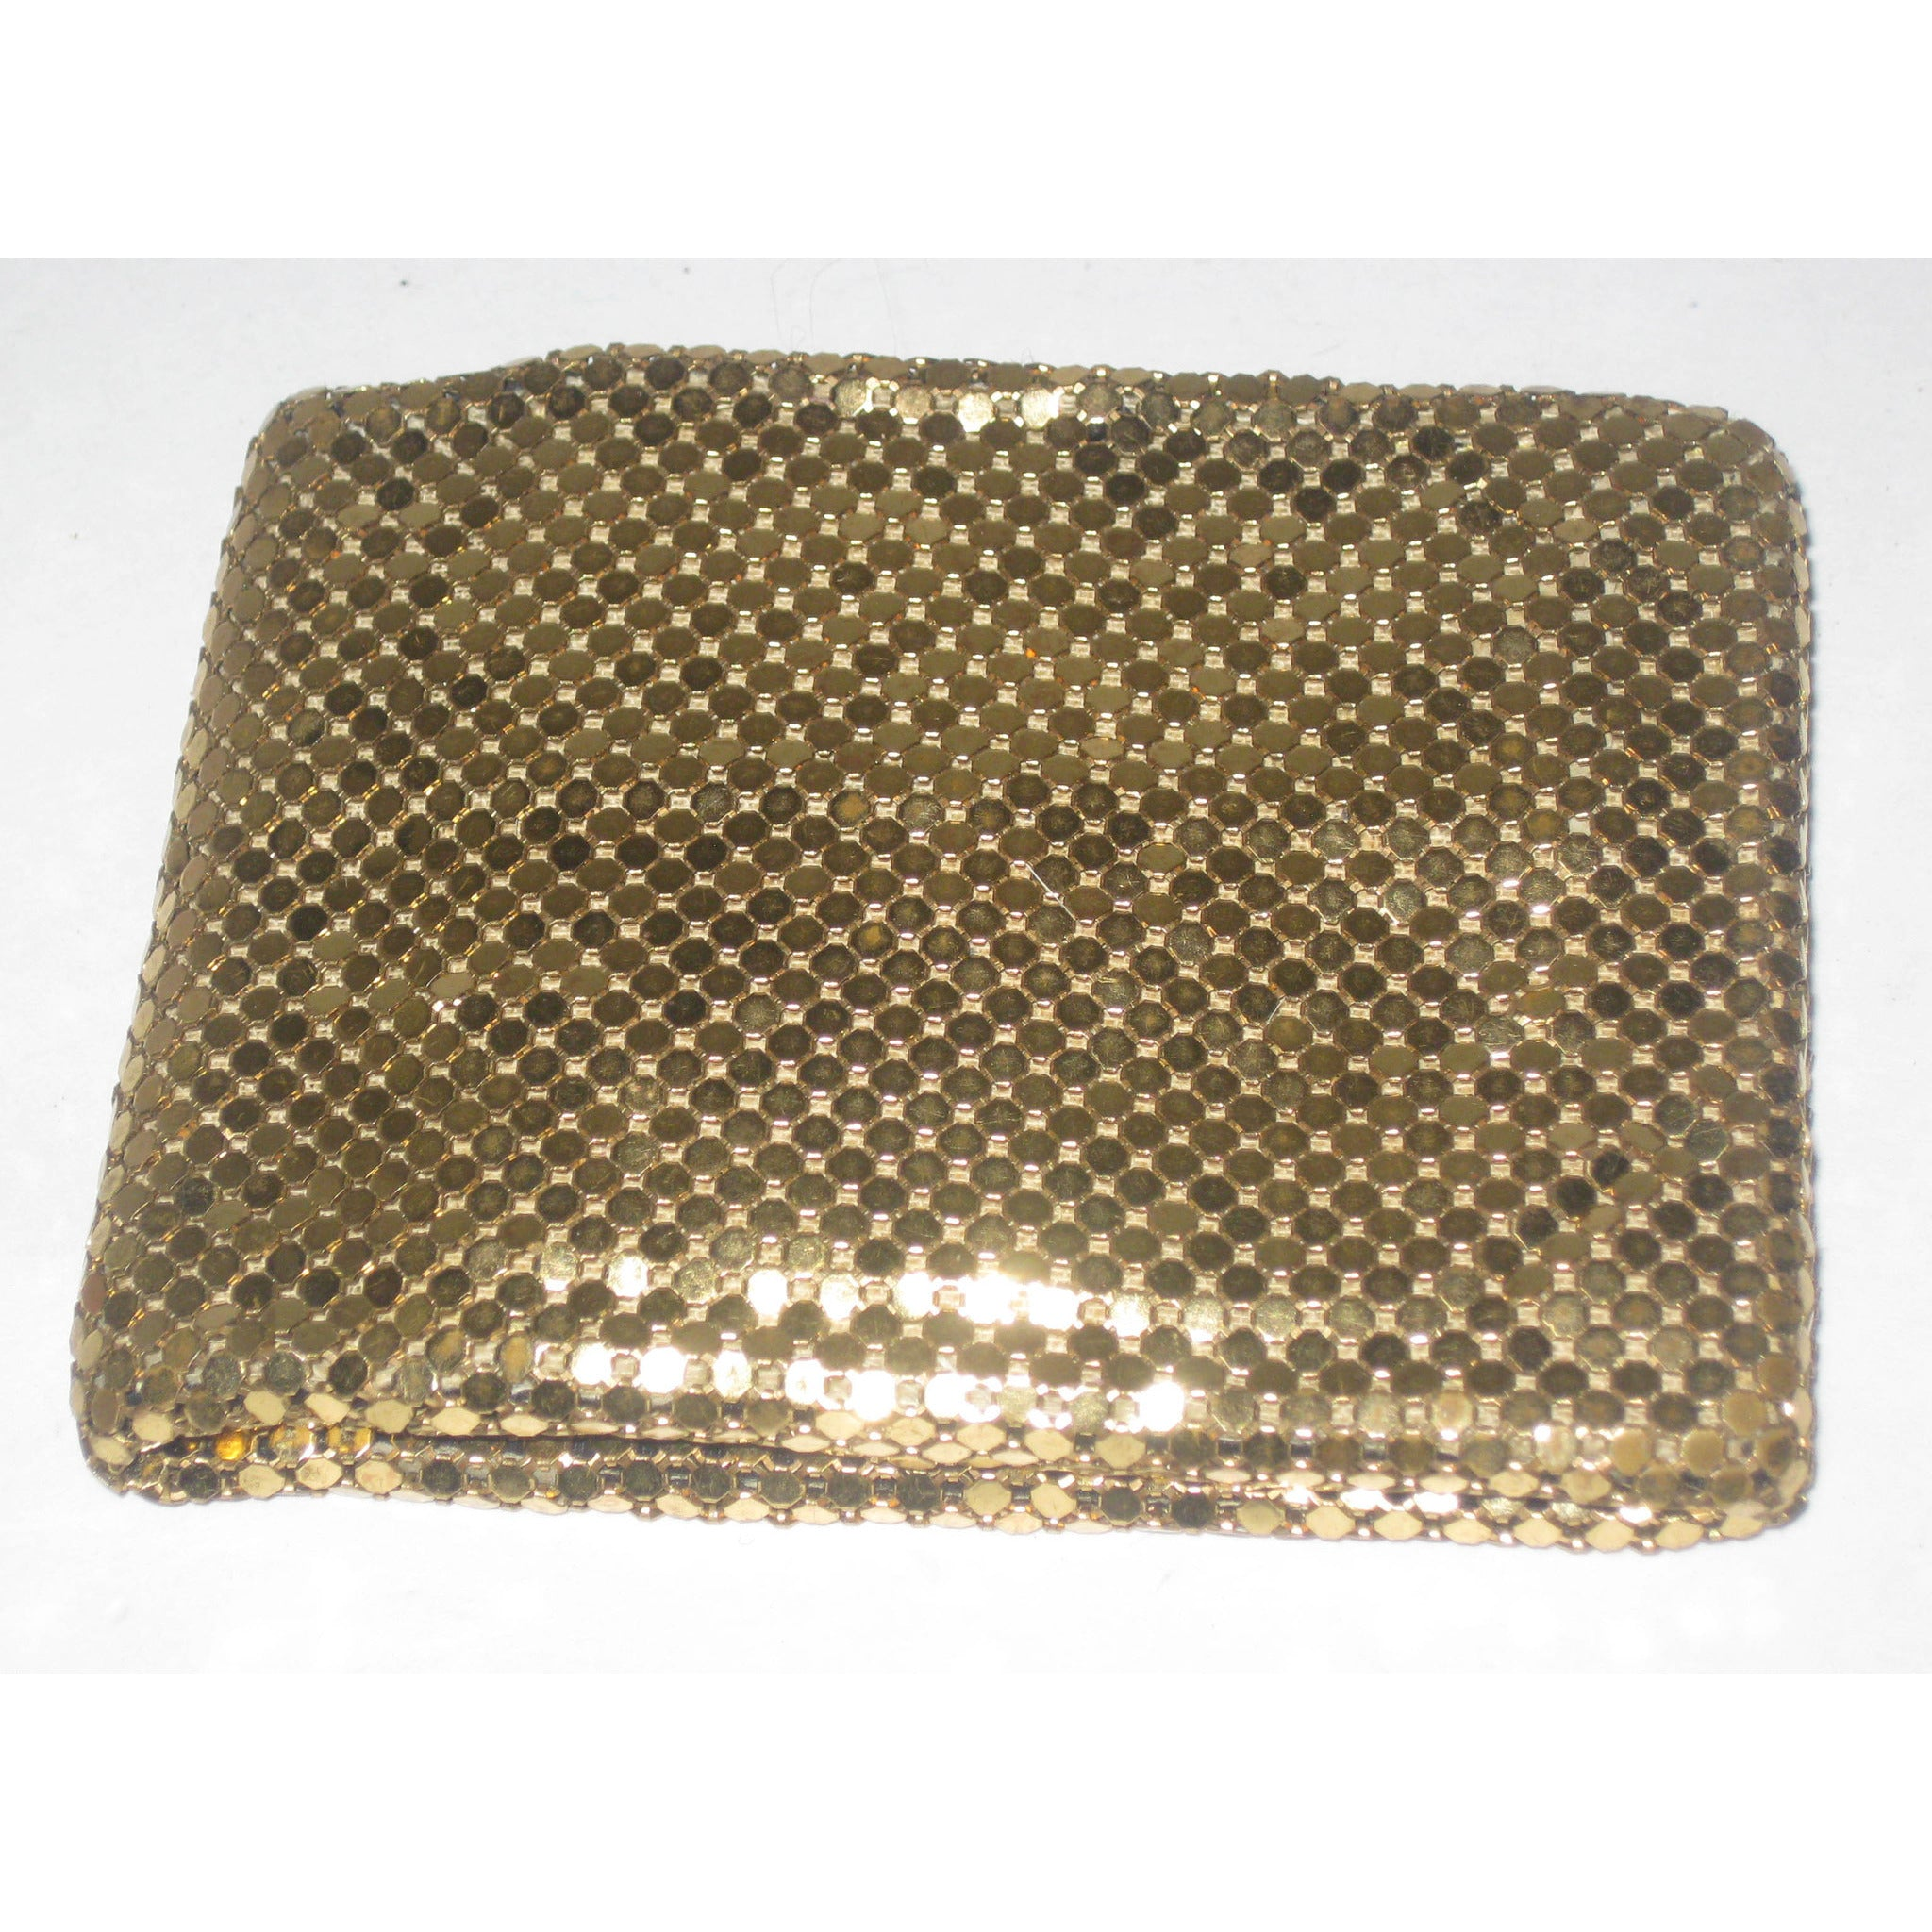 Vintage Gold Mesh Billfold Wallet By Whiting & Davis